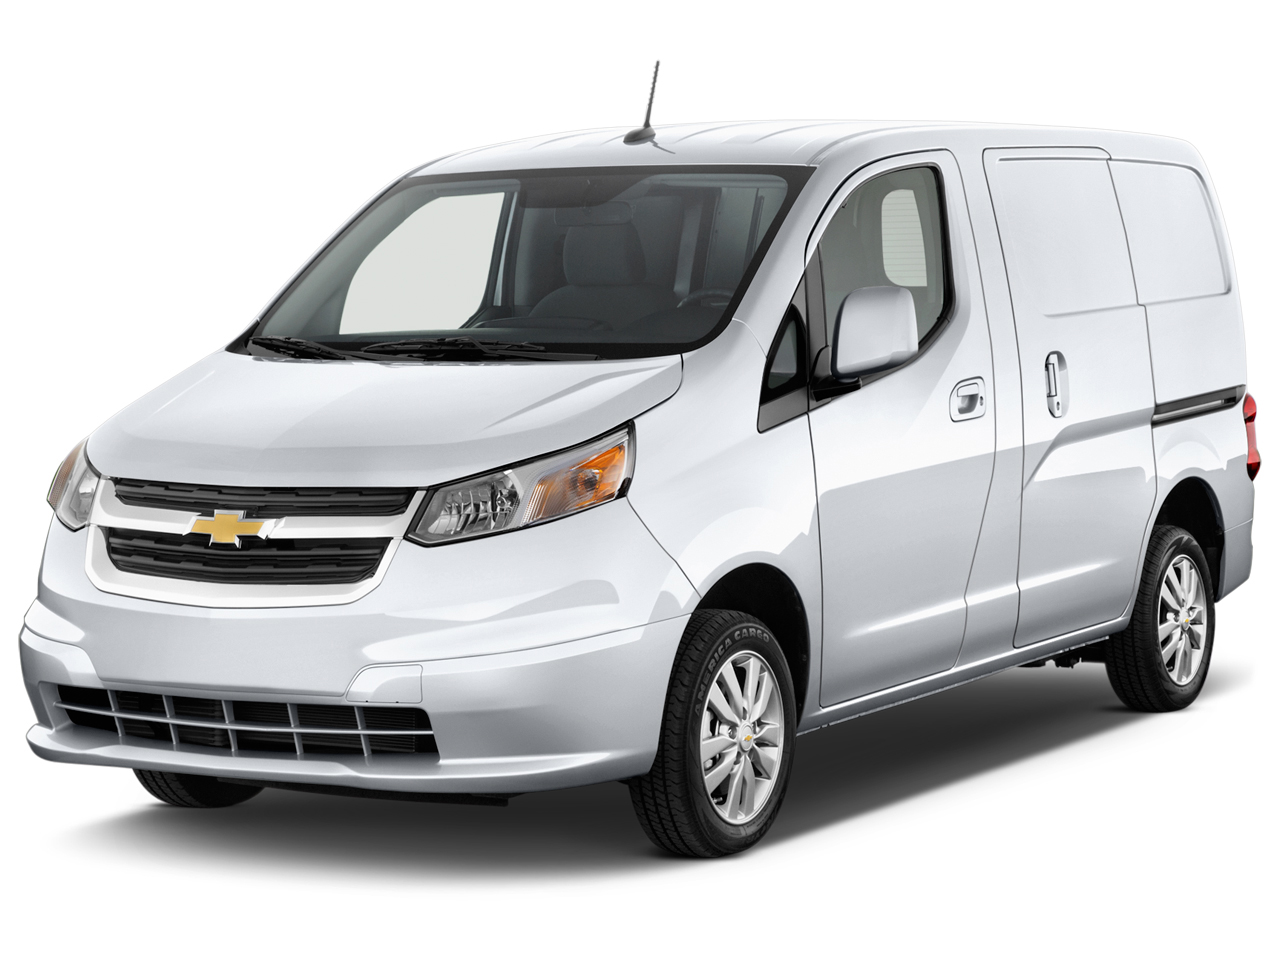 2017 Chevrolet City Express Cargo Van Chevy Review Ratings Specs Prices And Photos The Car Connection